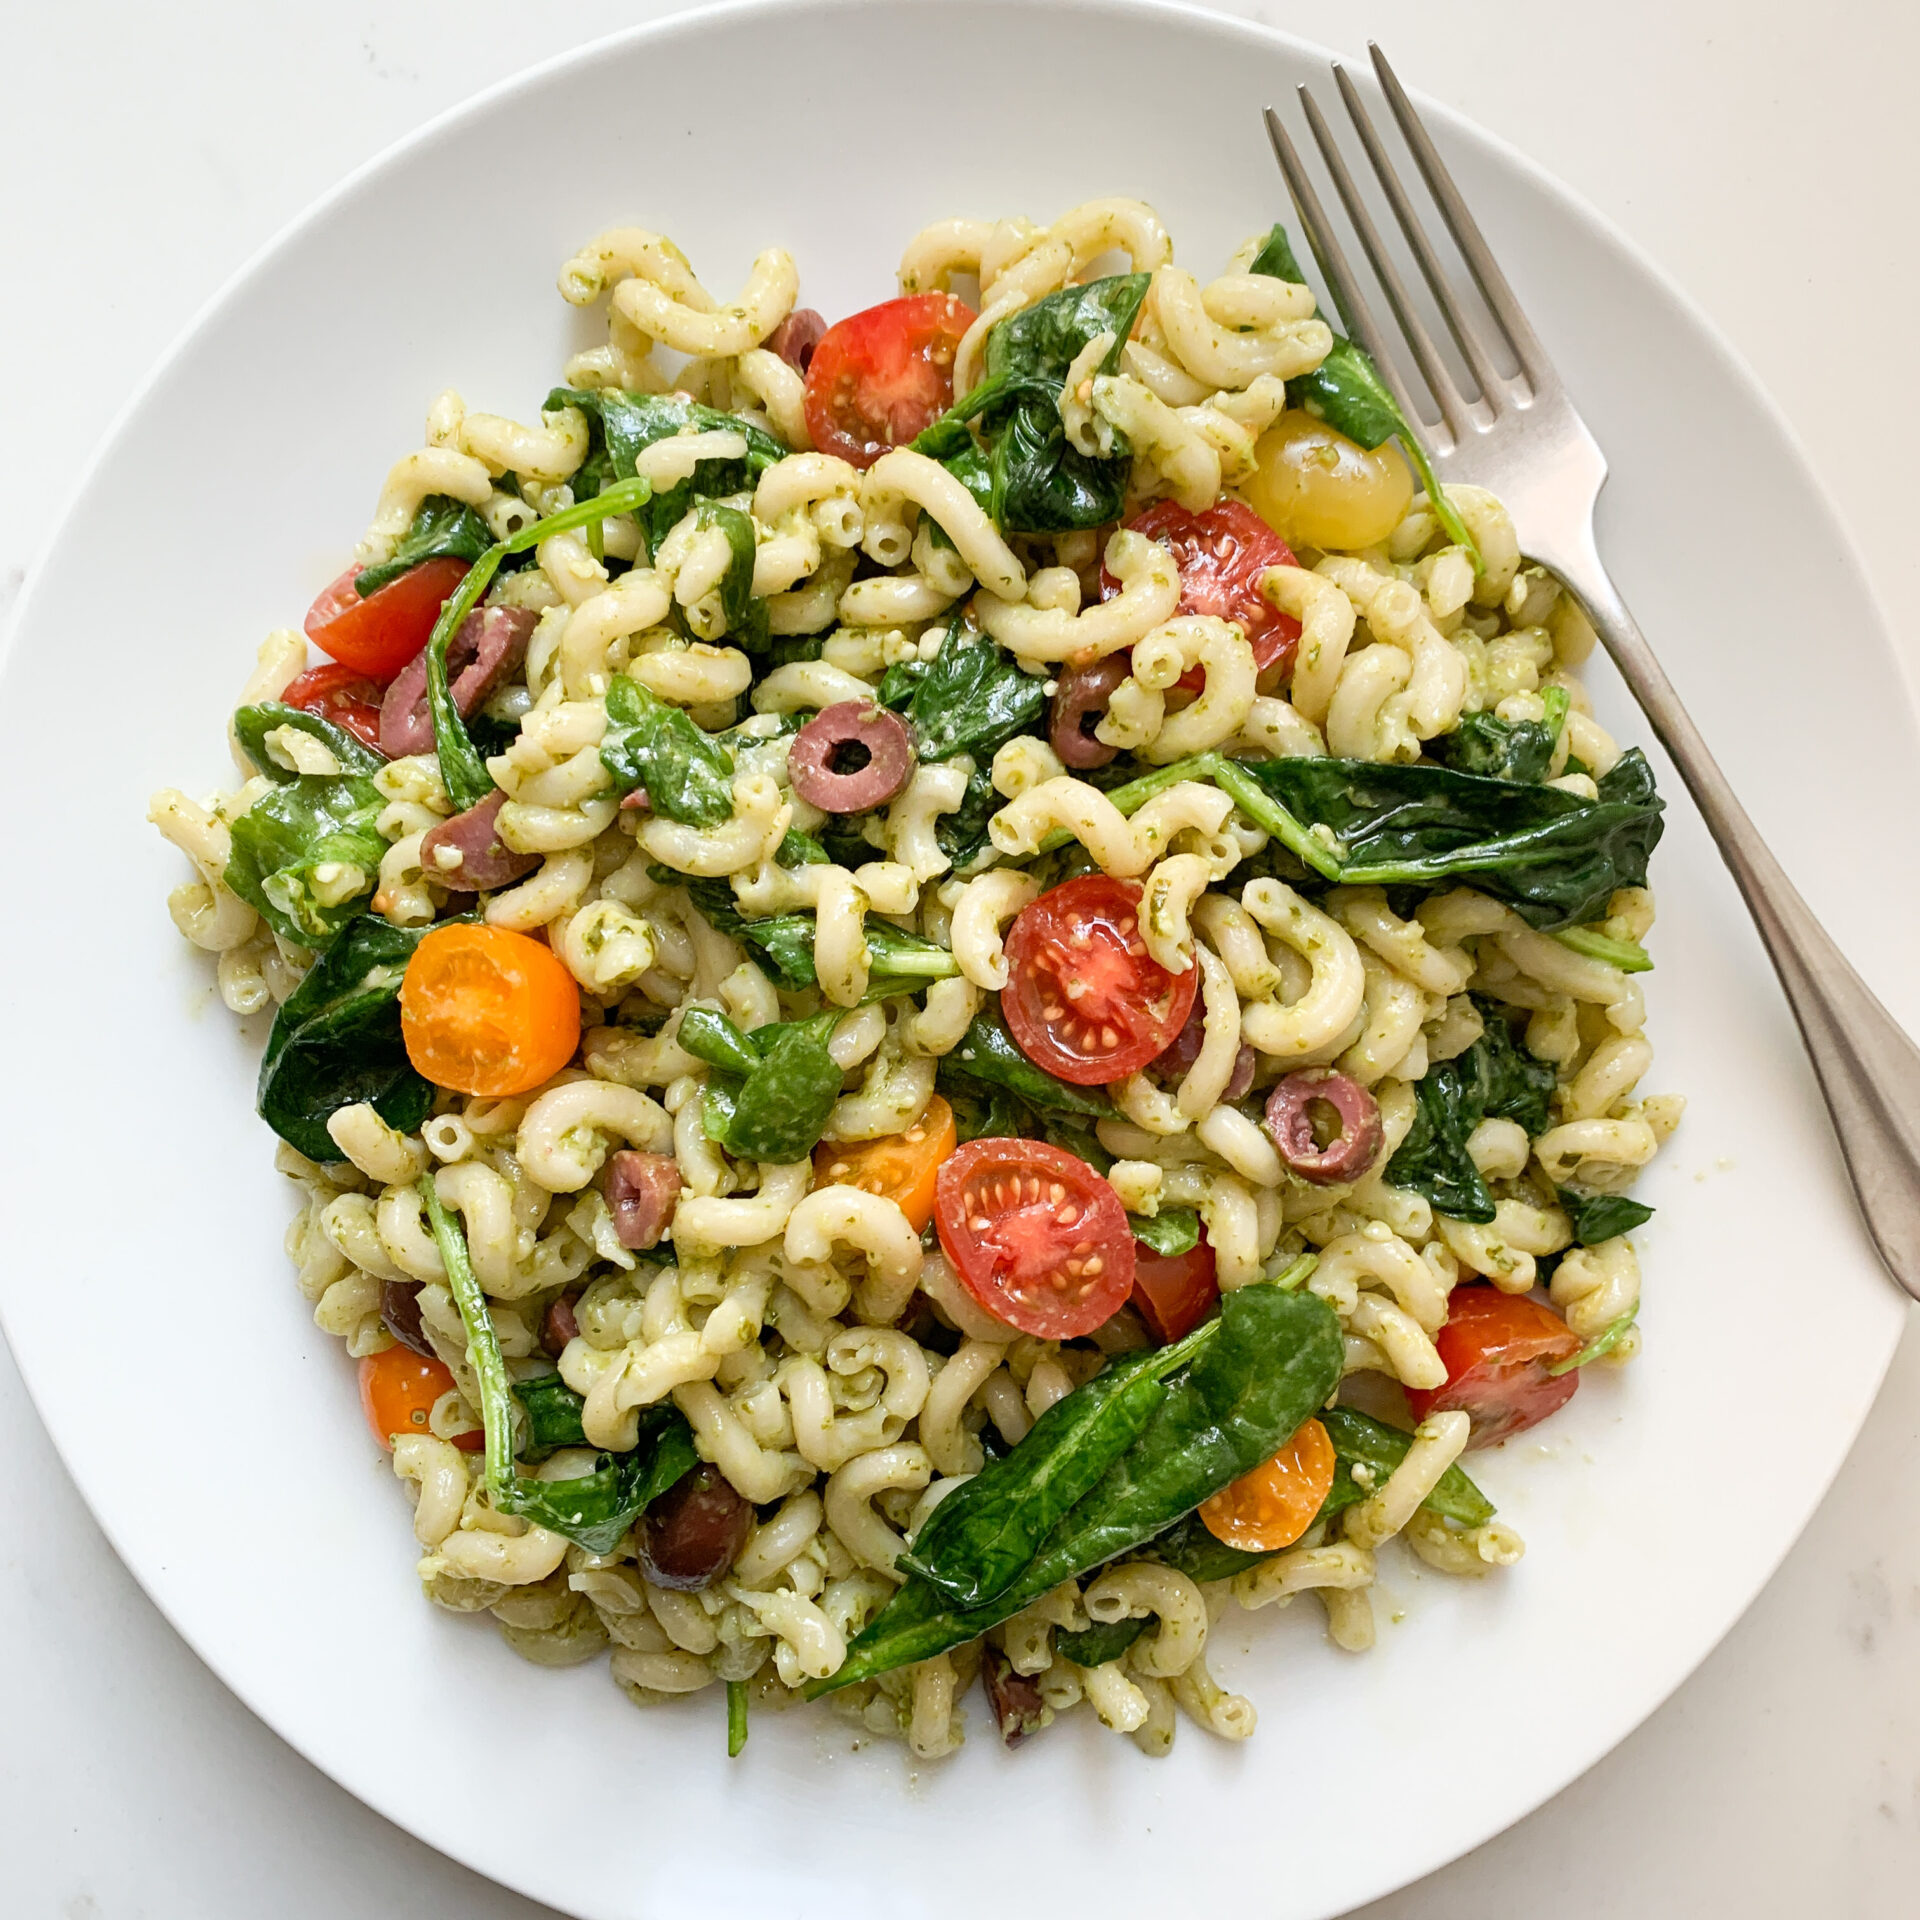 White plate filled with pasta salad - including brown rice pasta, pesto, spinach, tomatoes and black olives - with a fork on the top right.